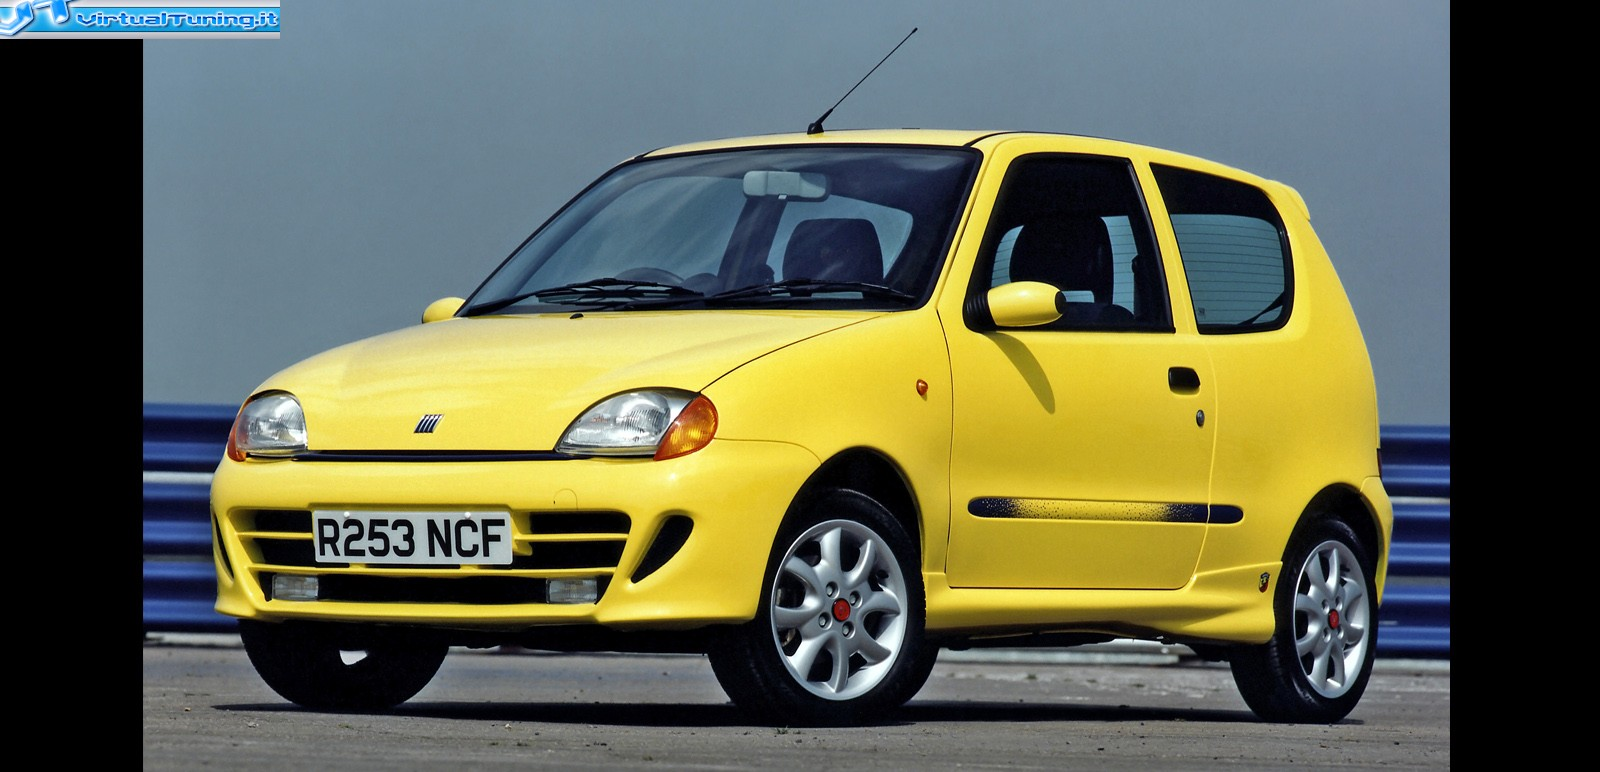 FIAT Seicento Bully